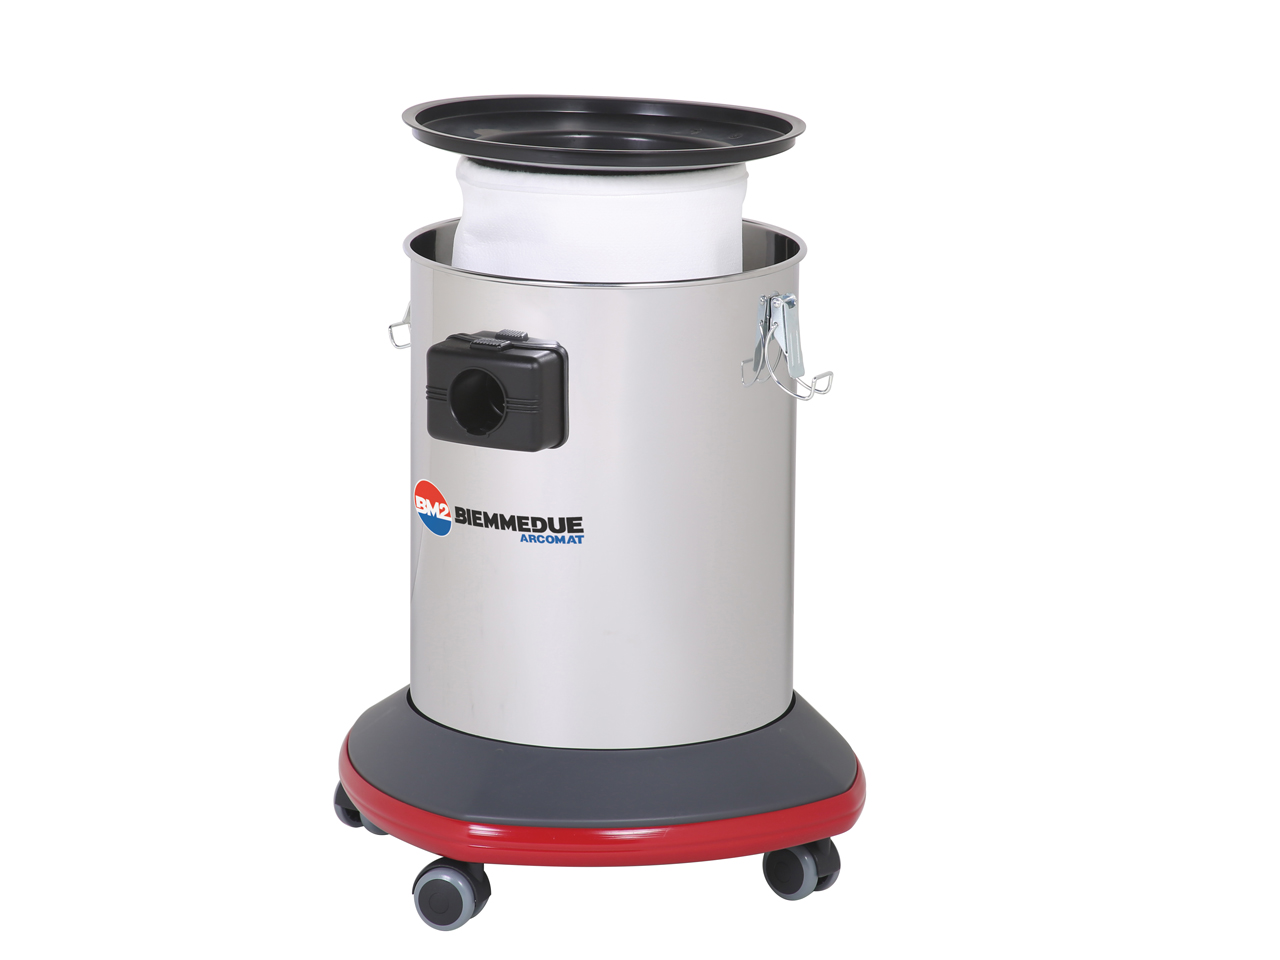 ASPIRAPOLVERE_ASPIRALIQUIDI_A_1_MOTORE_PER_USO_PROFESSIONALE_IN_CASA_O_LAVORO_SINGLE_MOTOR_WET&DRY_VACUUM_CLEANERS_FOR_PROFESSIONAL_USE_AT_HOME_OR_WORK_9.jpg